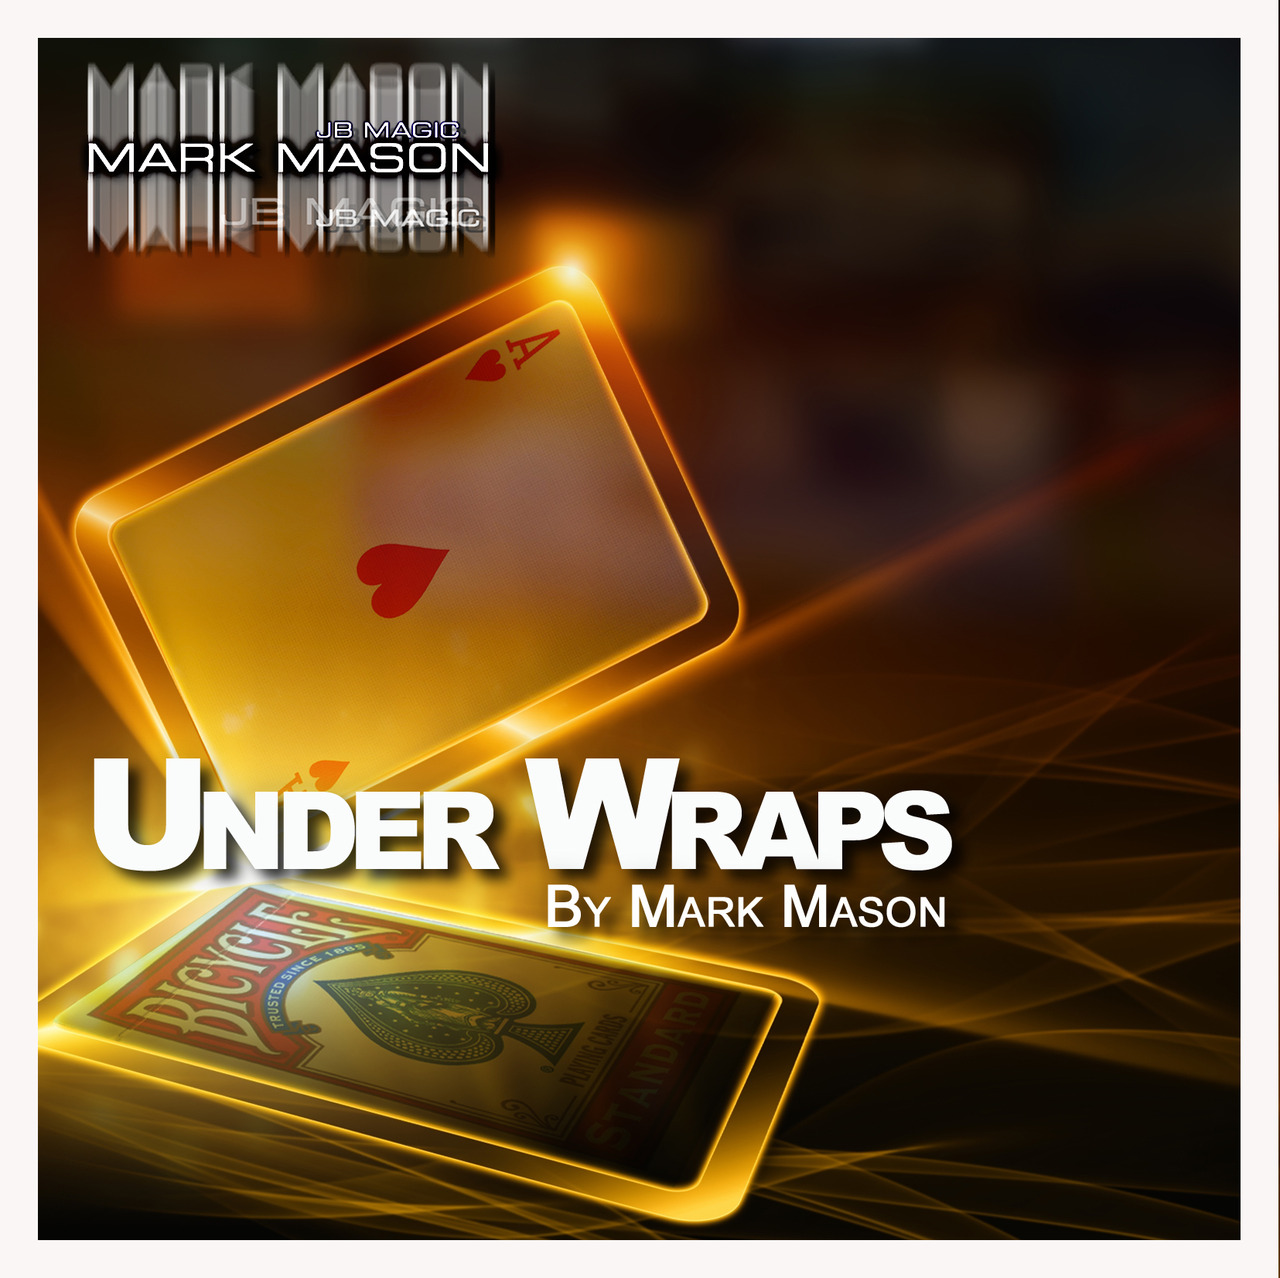 Under Wraps DVD & Gimmicks by Mark Mason